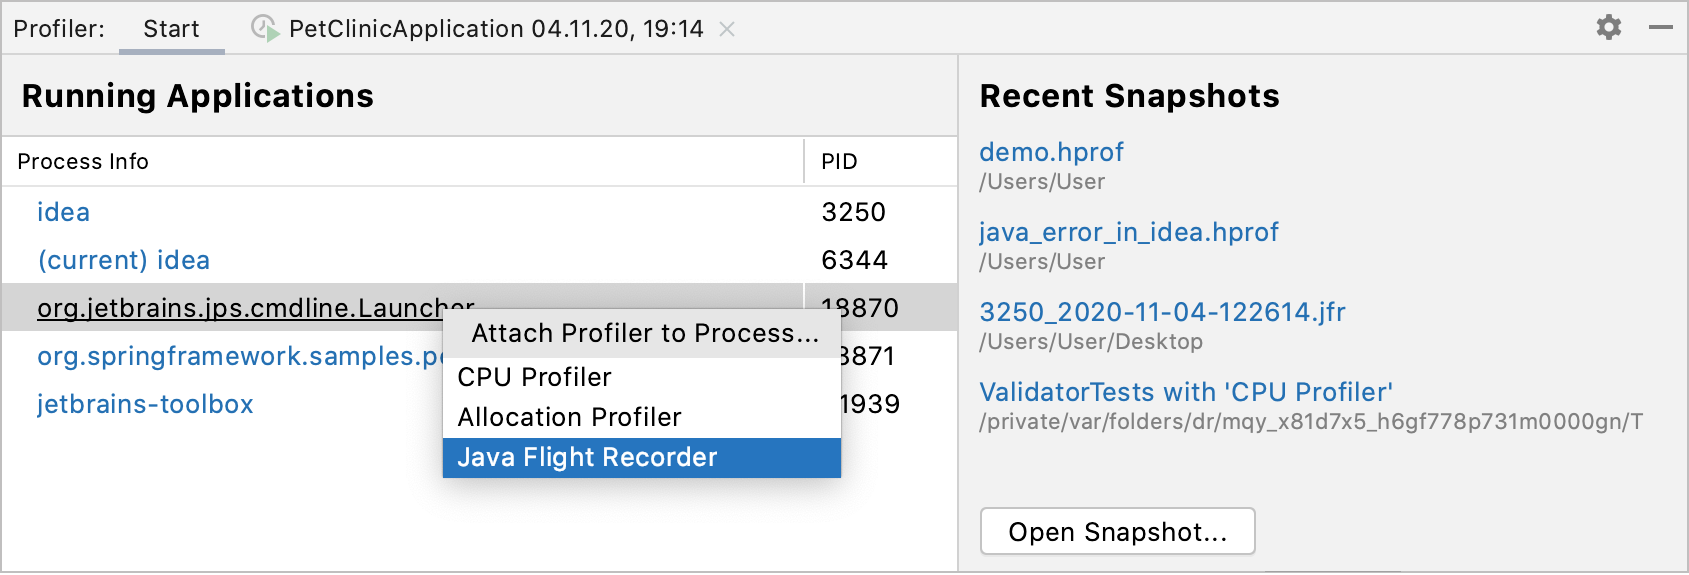 Attaching Java Flight Recorder to a process